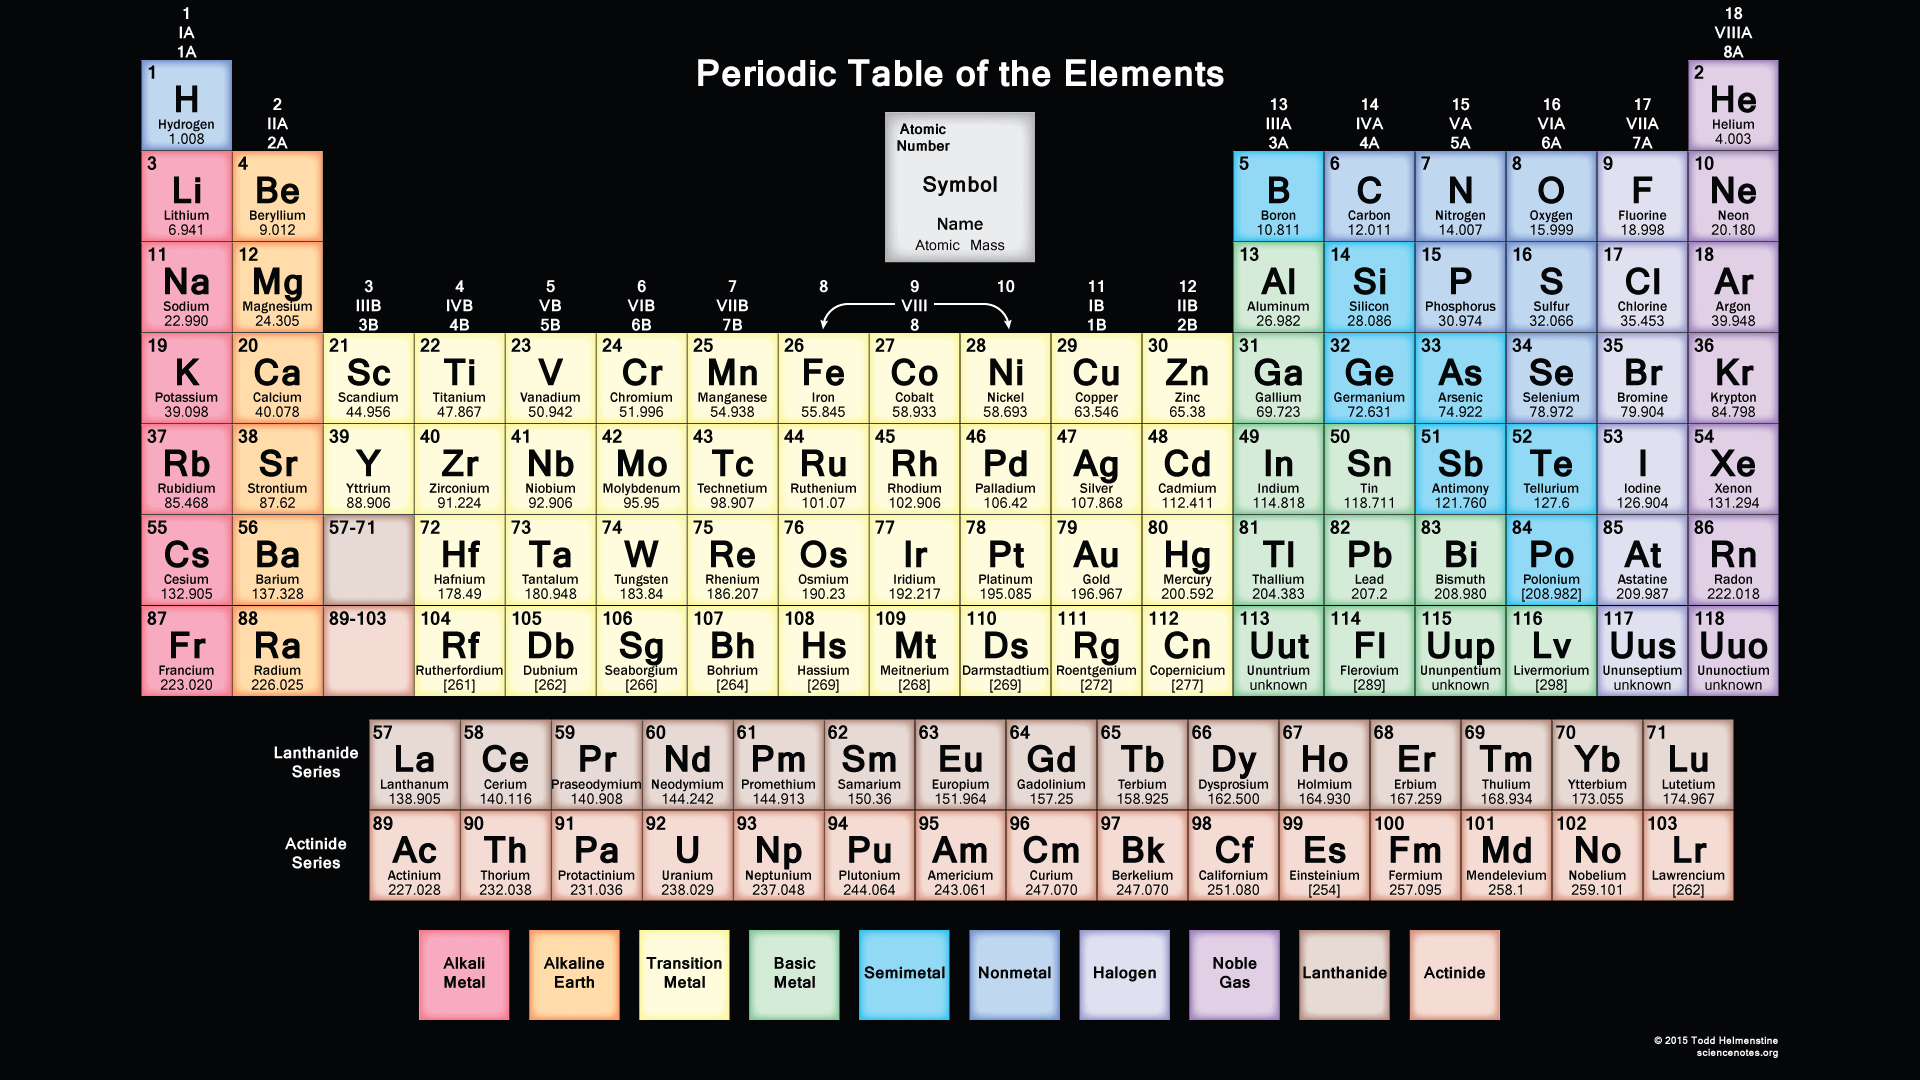 Hd periodic table wallpaper muted colors new muted periodic table black background urtaz Choice Image